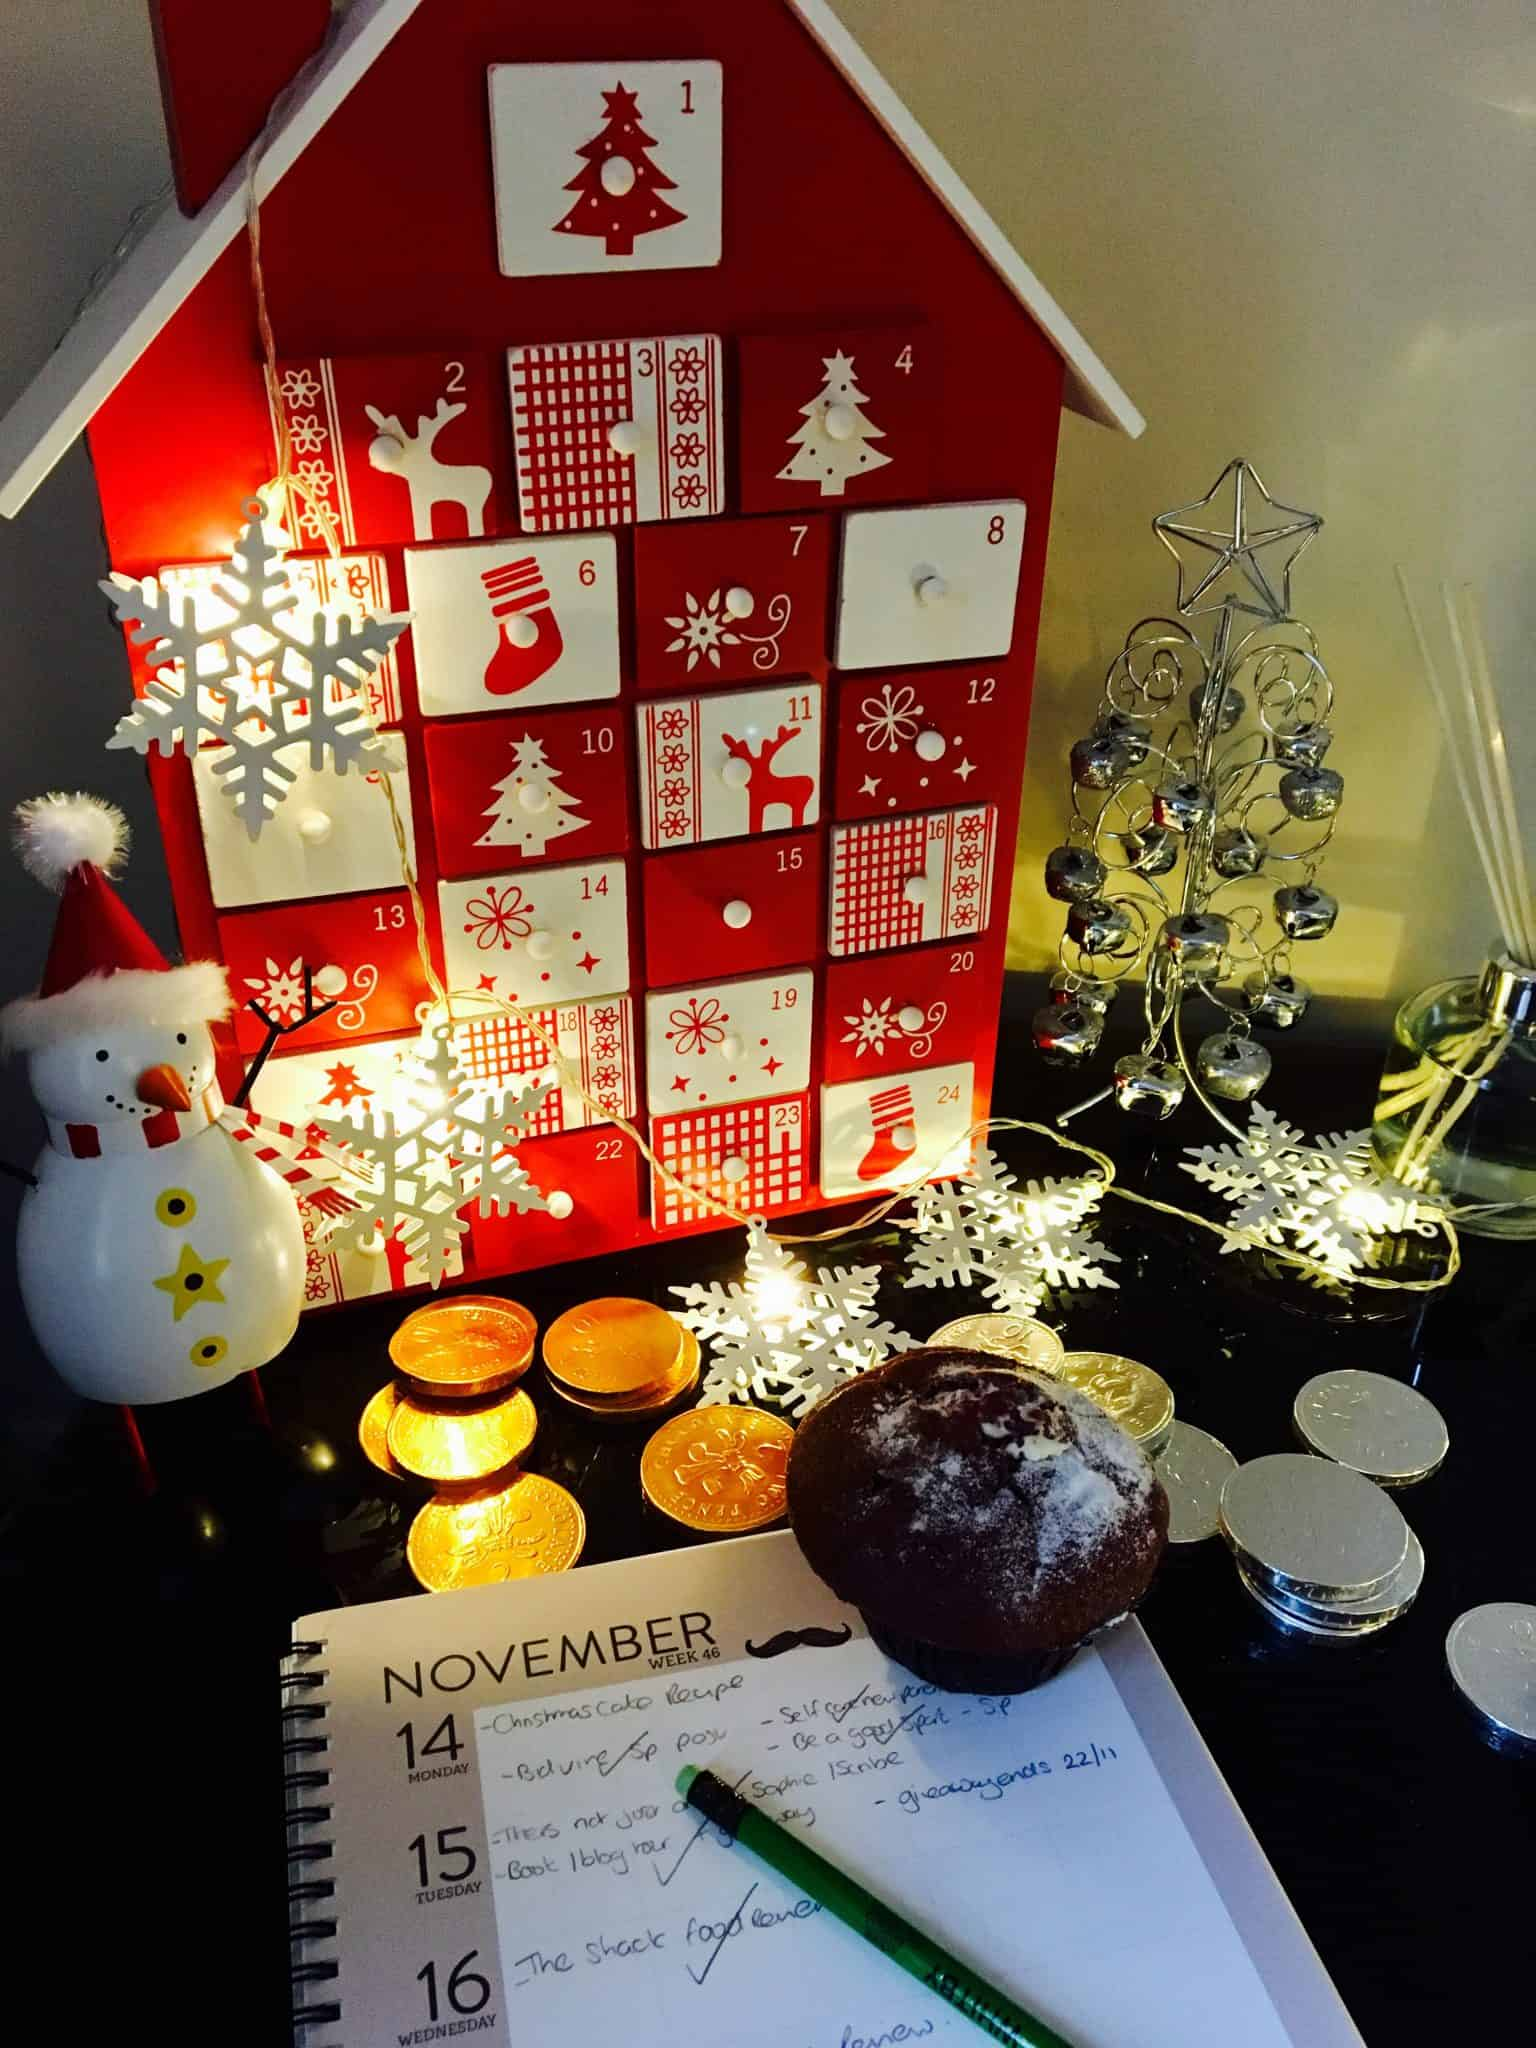 Wooden Advent Calender from Debenhams in my Christmas decorated work space